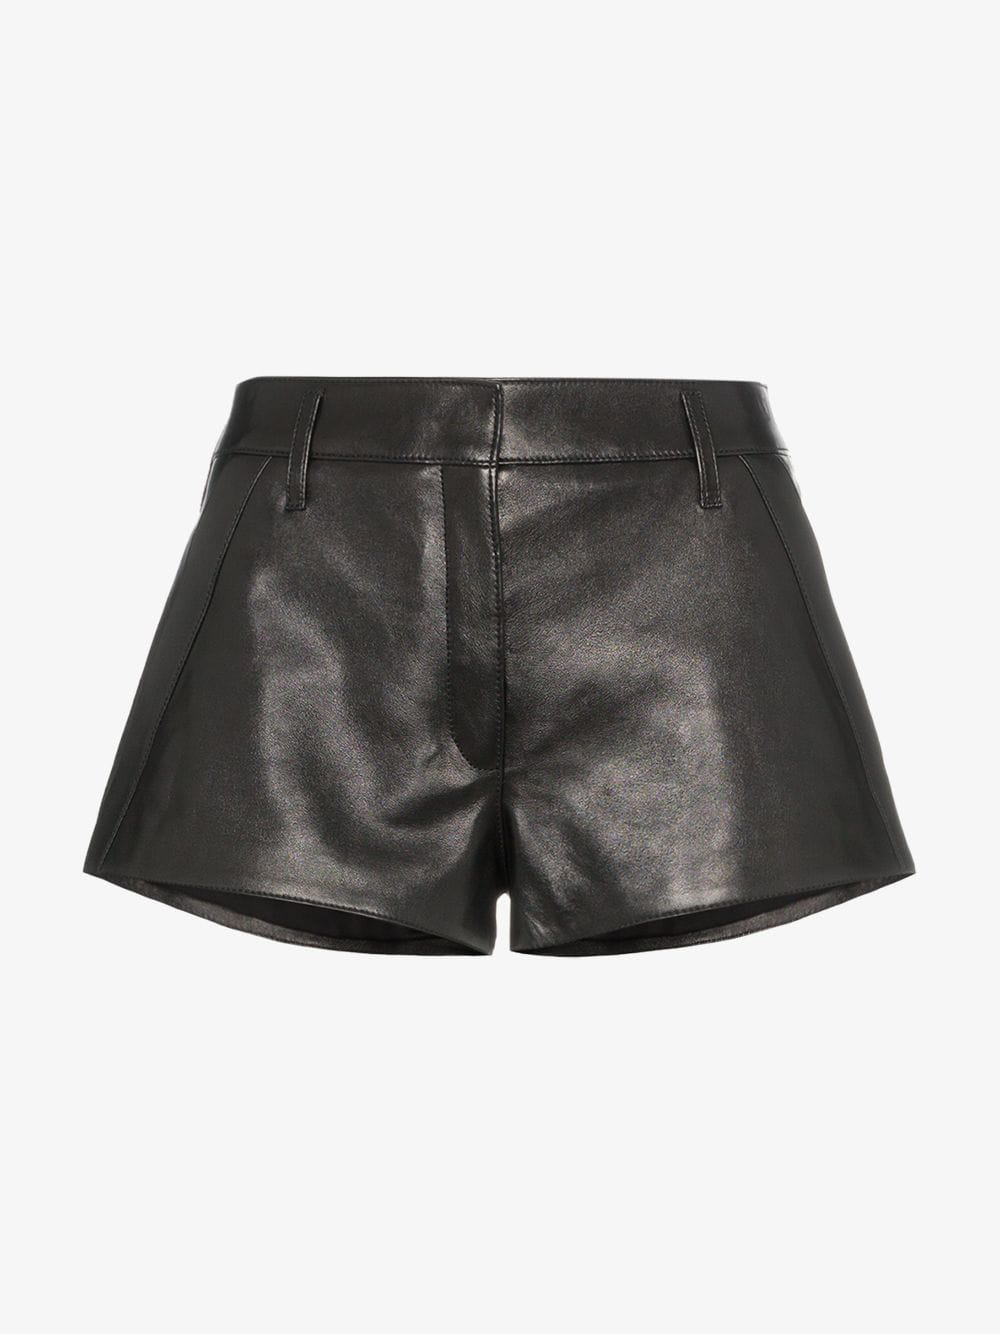 cf624d4fb4f SAINT LAURENT. Black Leather Shorts. $916 - $1208. Available From 2 stores